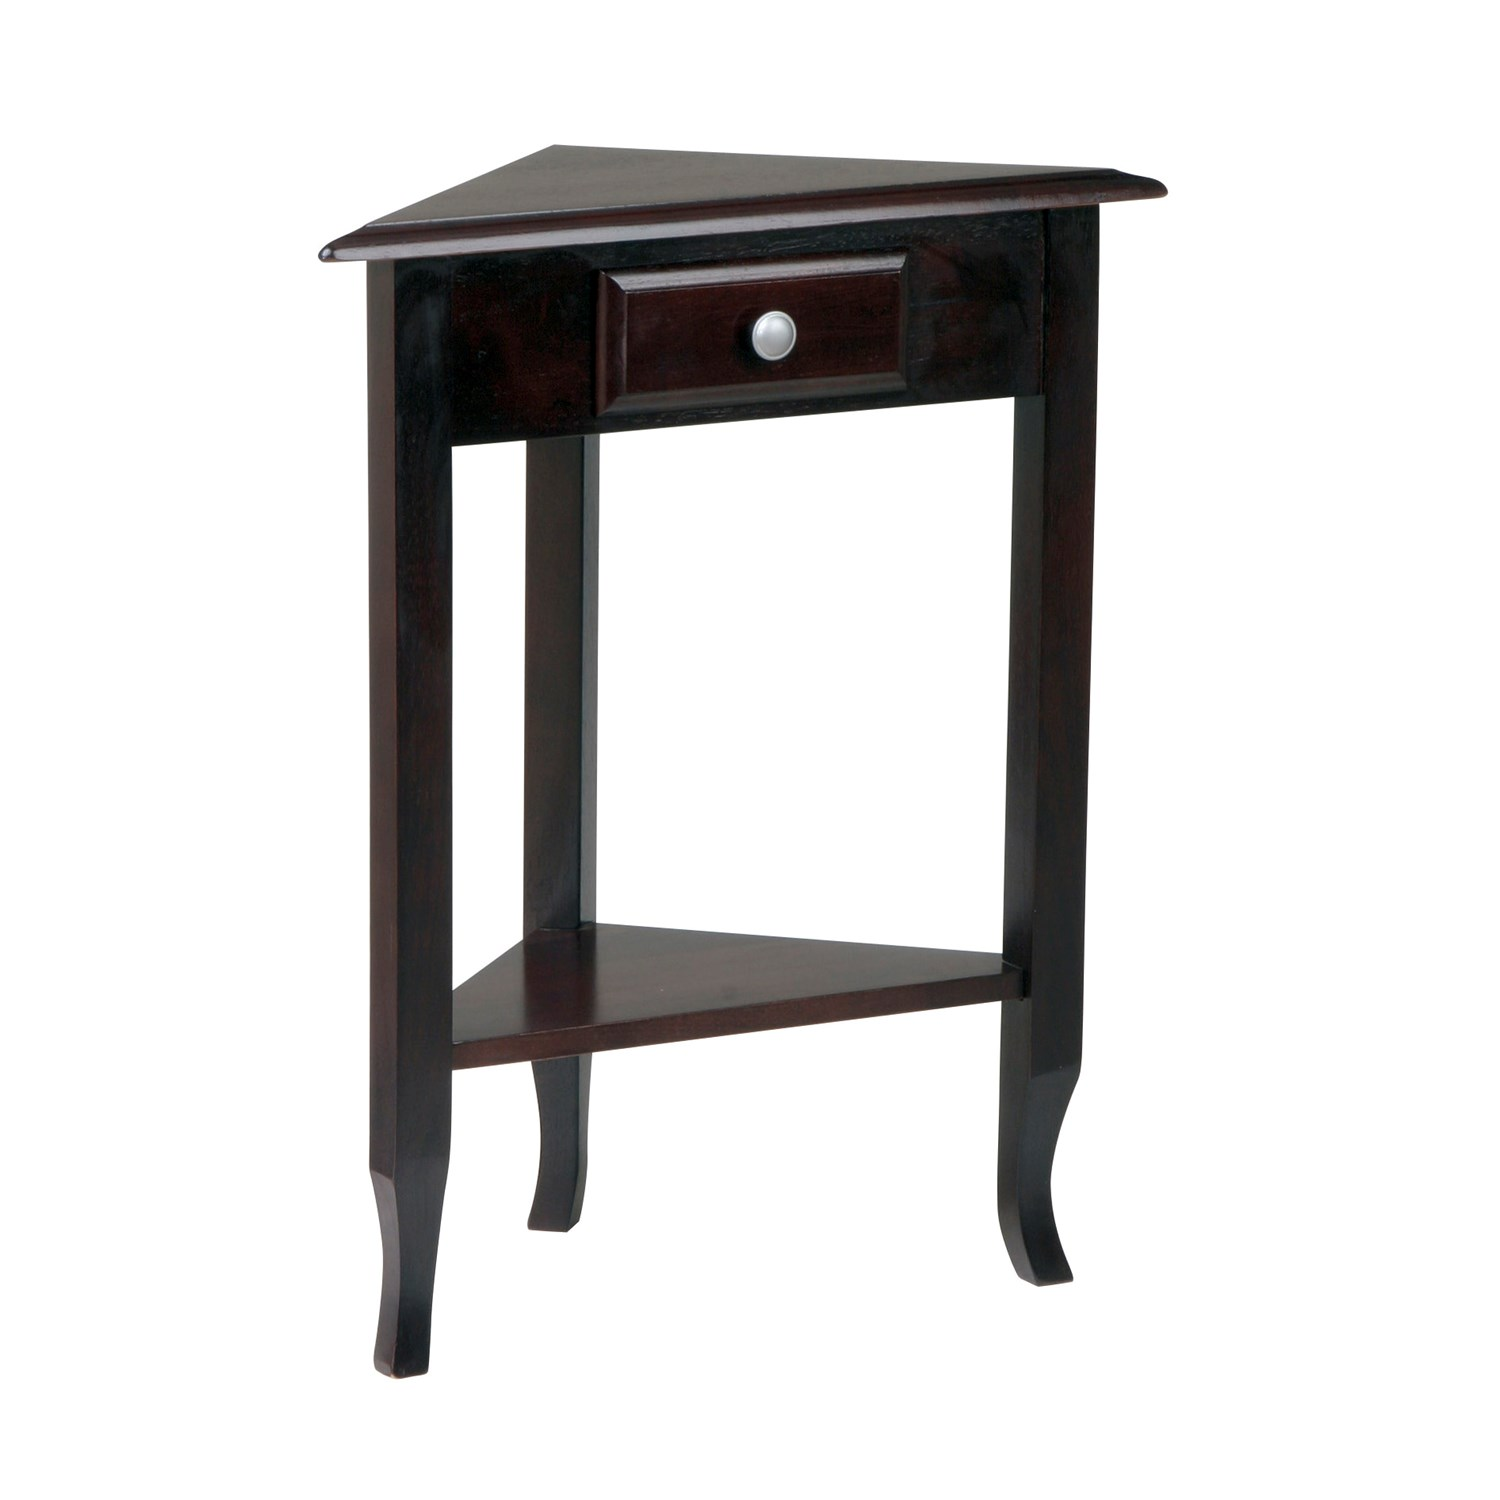 office star products merlot corner accent table with drawer white bedroom mirrors furniture end tables metal and glass large dining room sets floor lamp circular concrete look